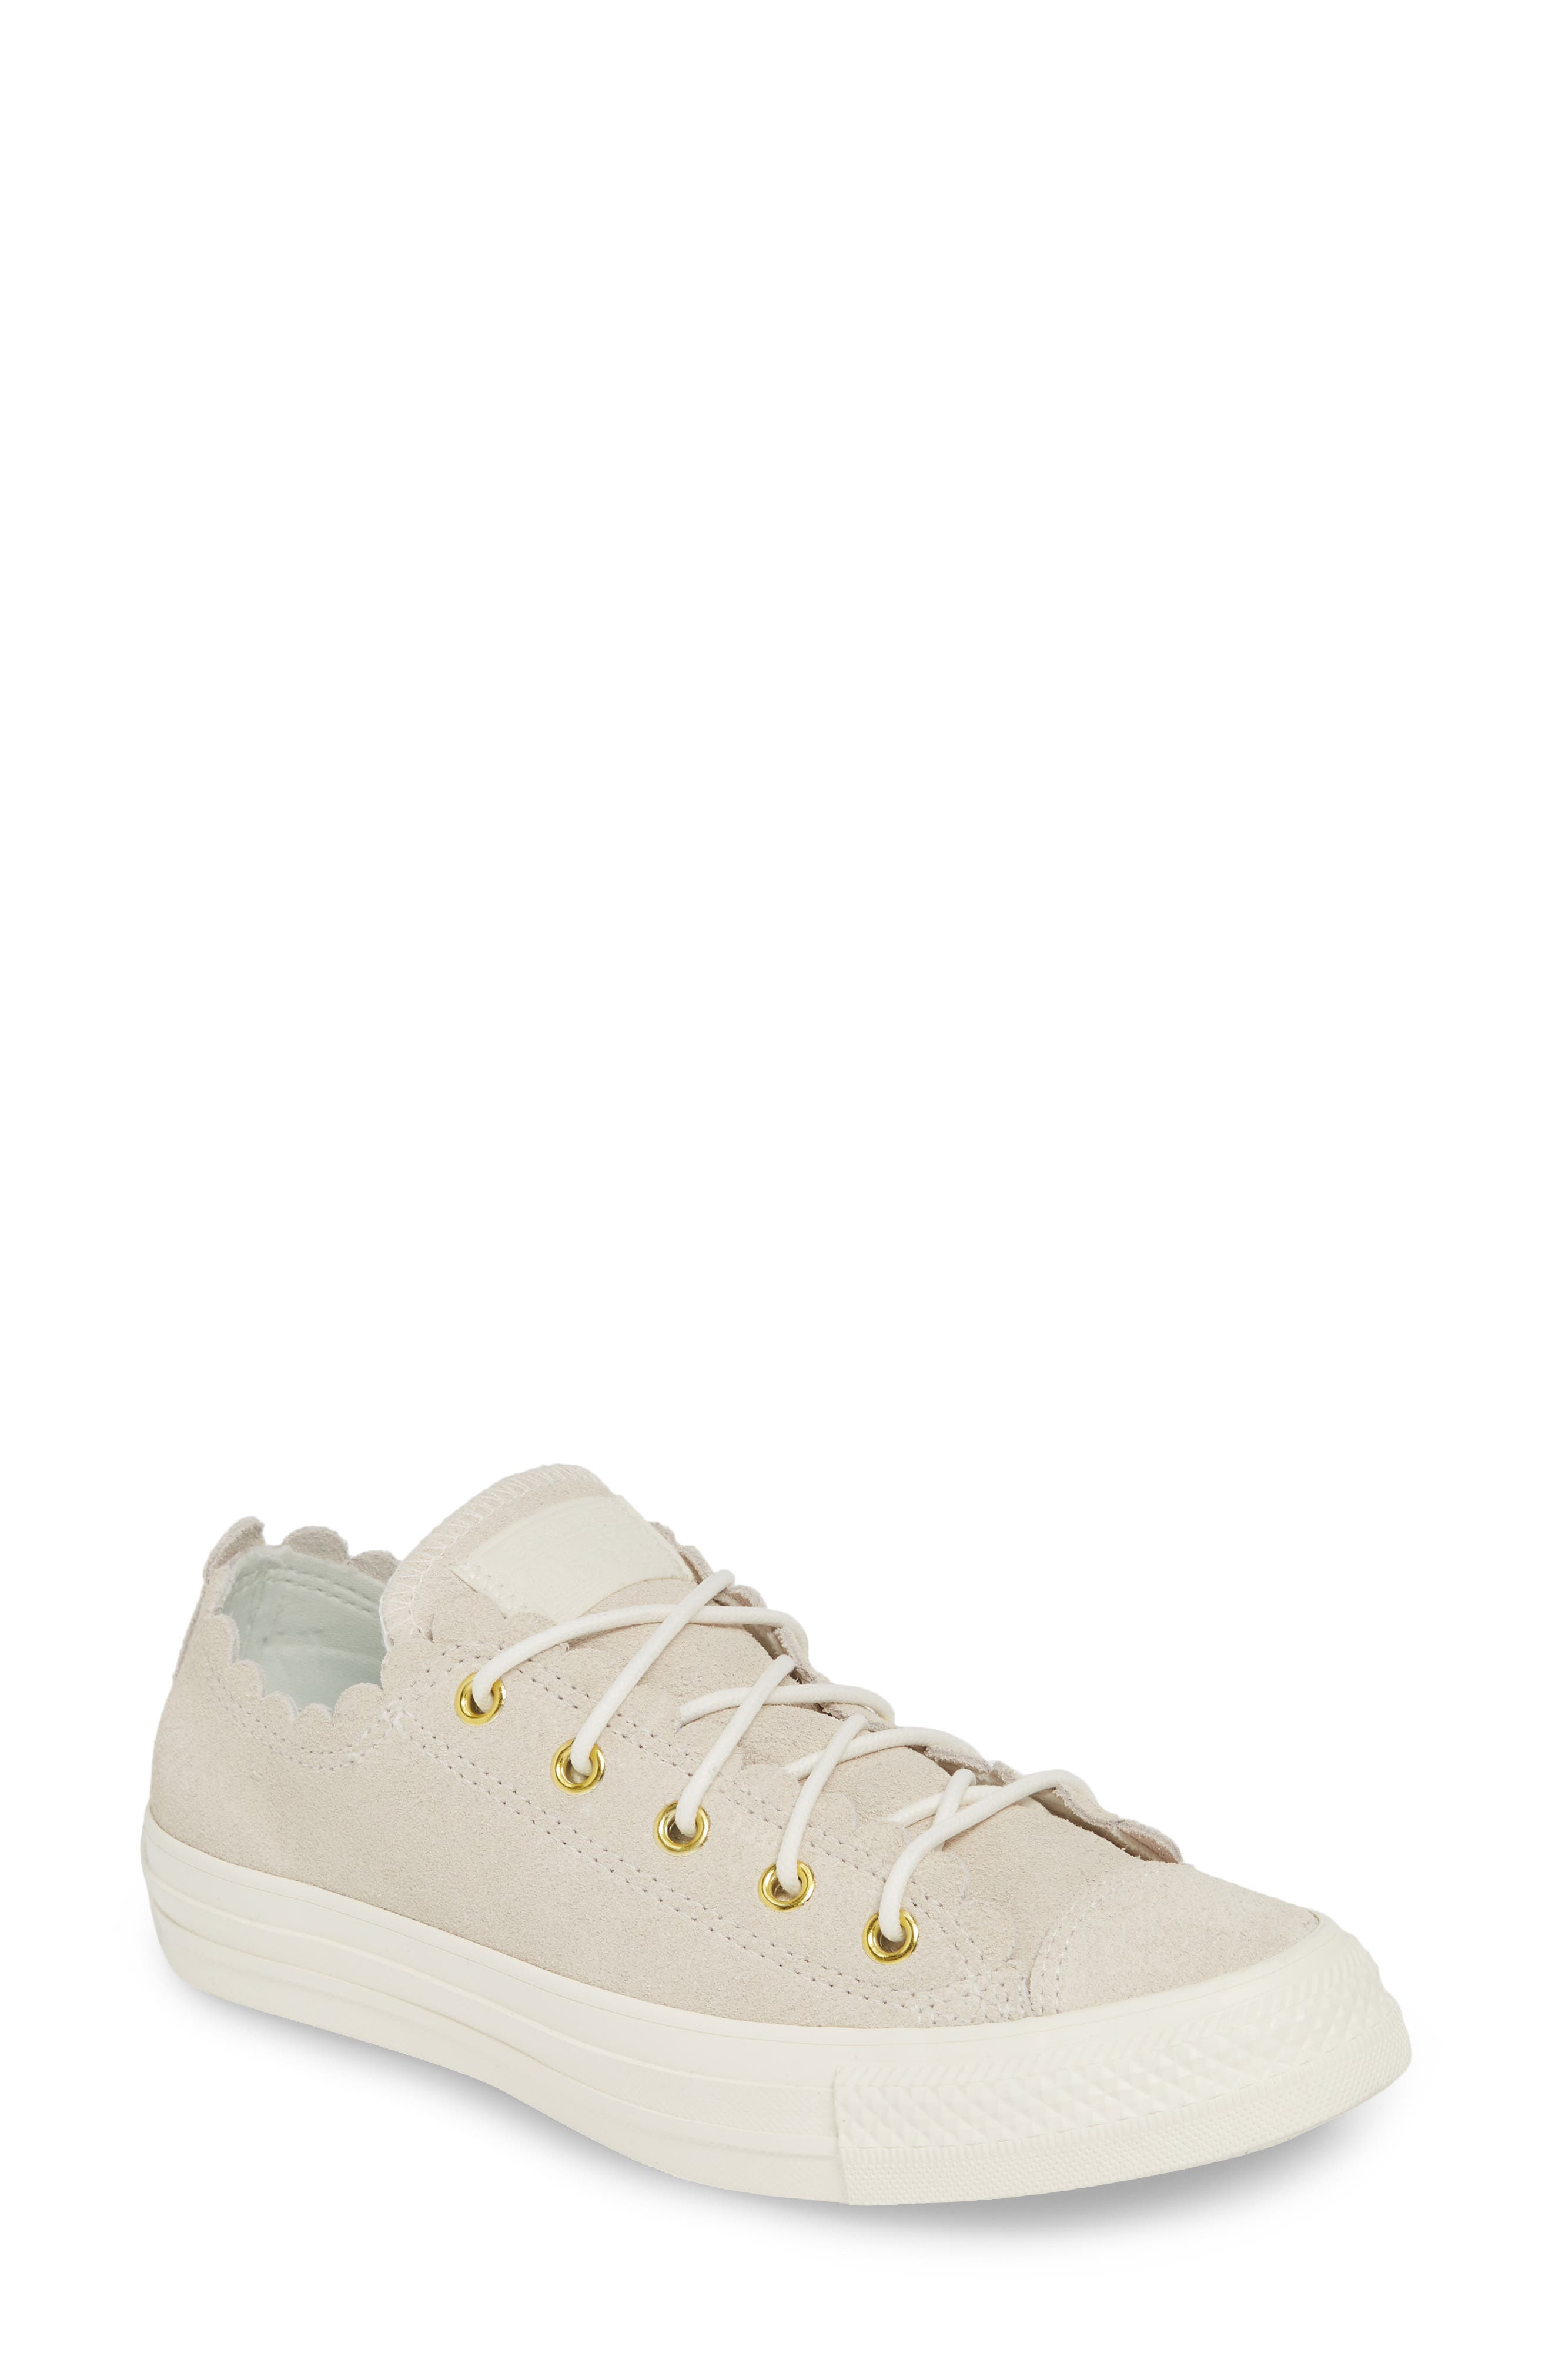 CONVERSE, Chuck Taylor<sup>®</sup> All Star<sup>®</sup> Scallop Low Top Leather Sneaker, Main thumbnail 1, color, EGRET/ GOLD/ EGRET